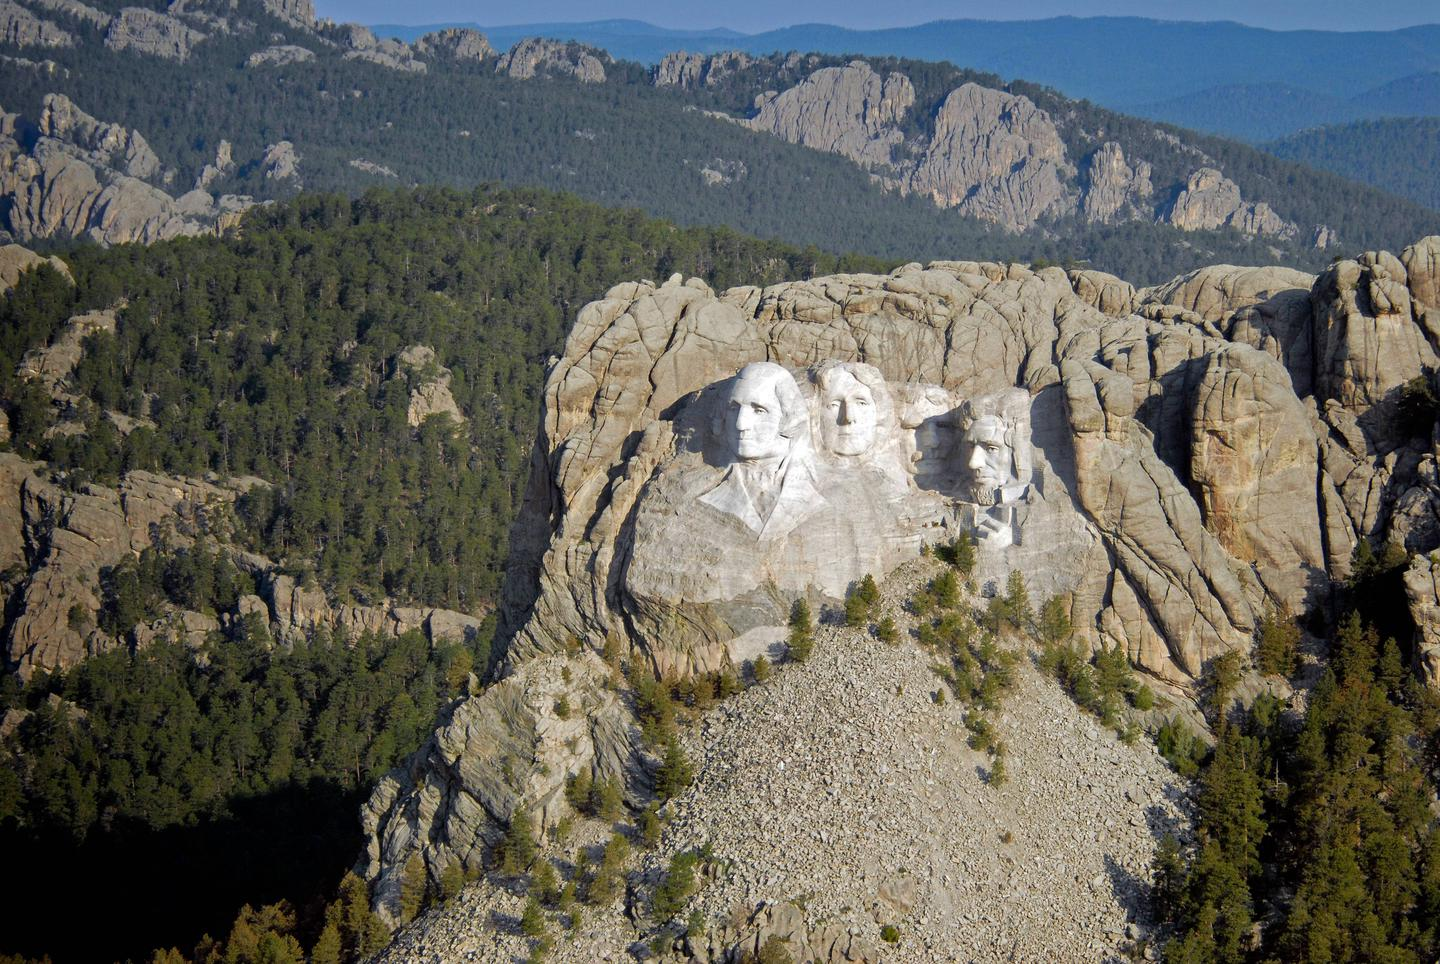 A view of Mount Rushmore National Memorial